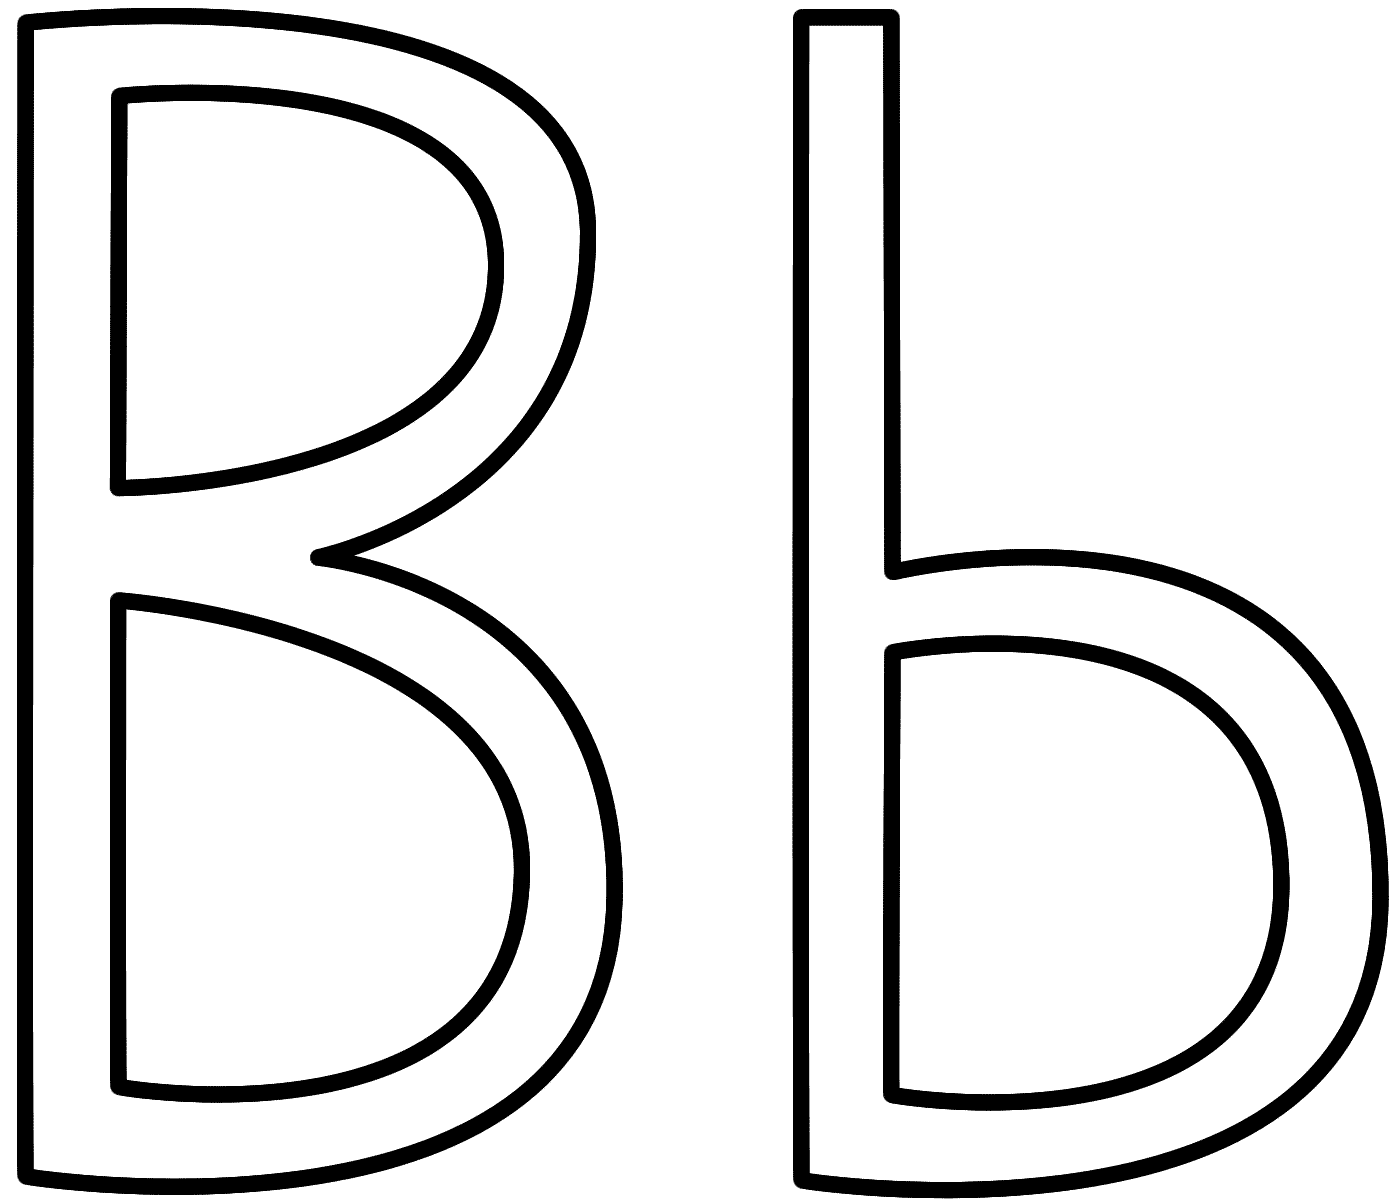 Clipart letter b b royalty free Letter B - Coloring Page (Alphabet) royalty free